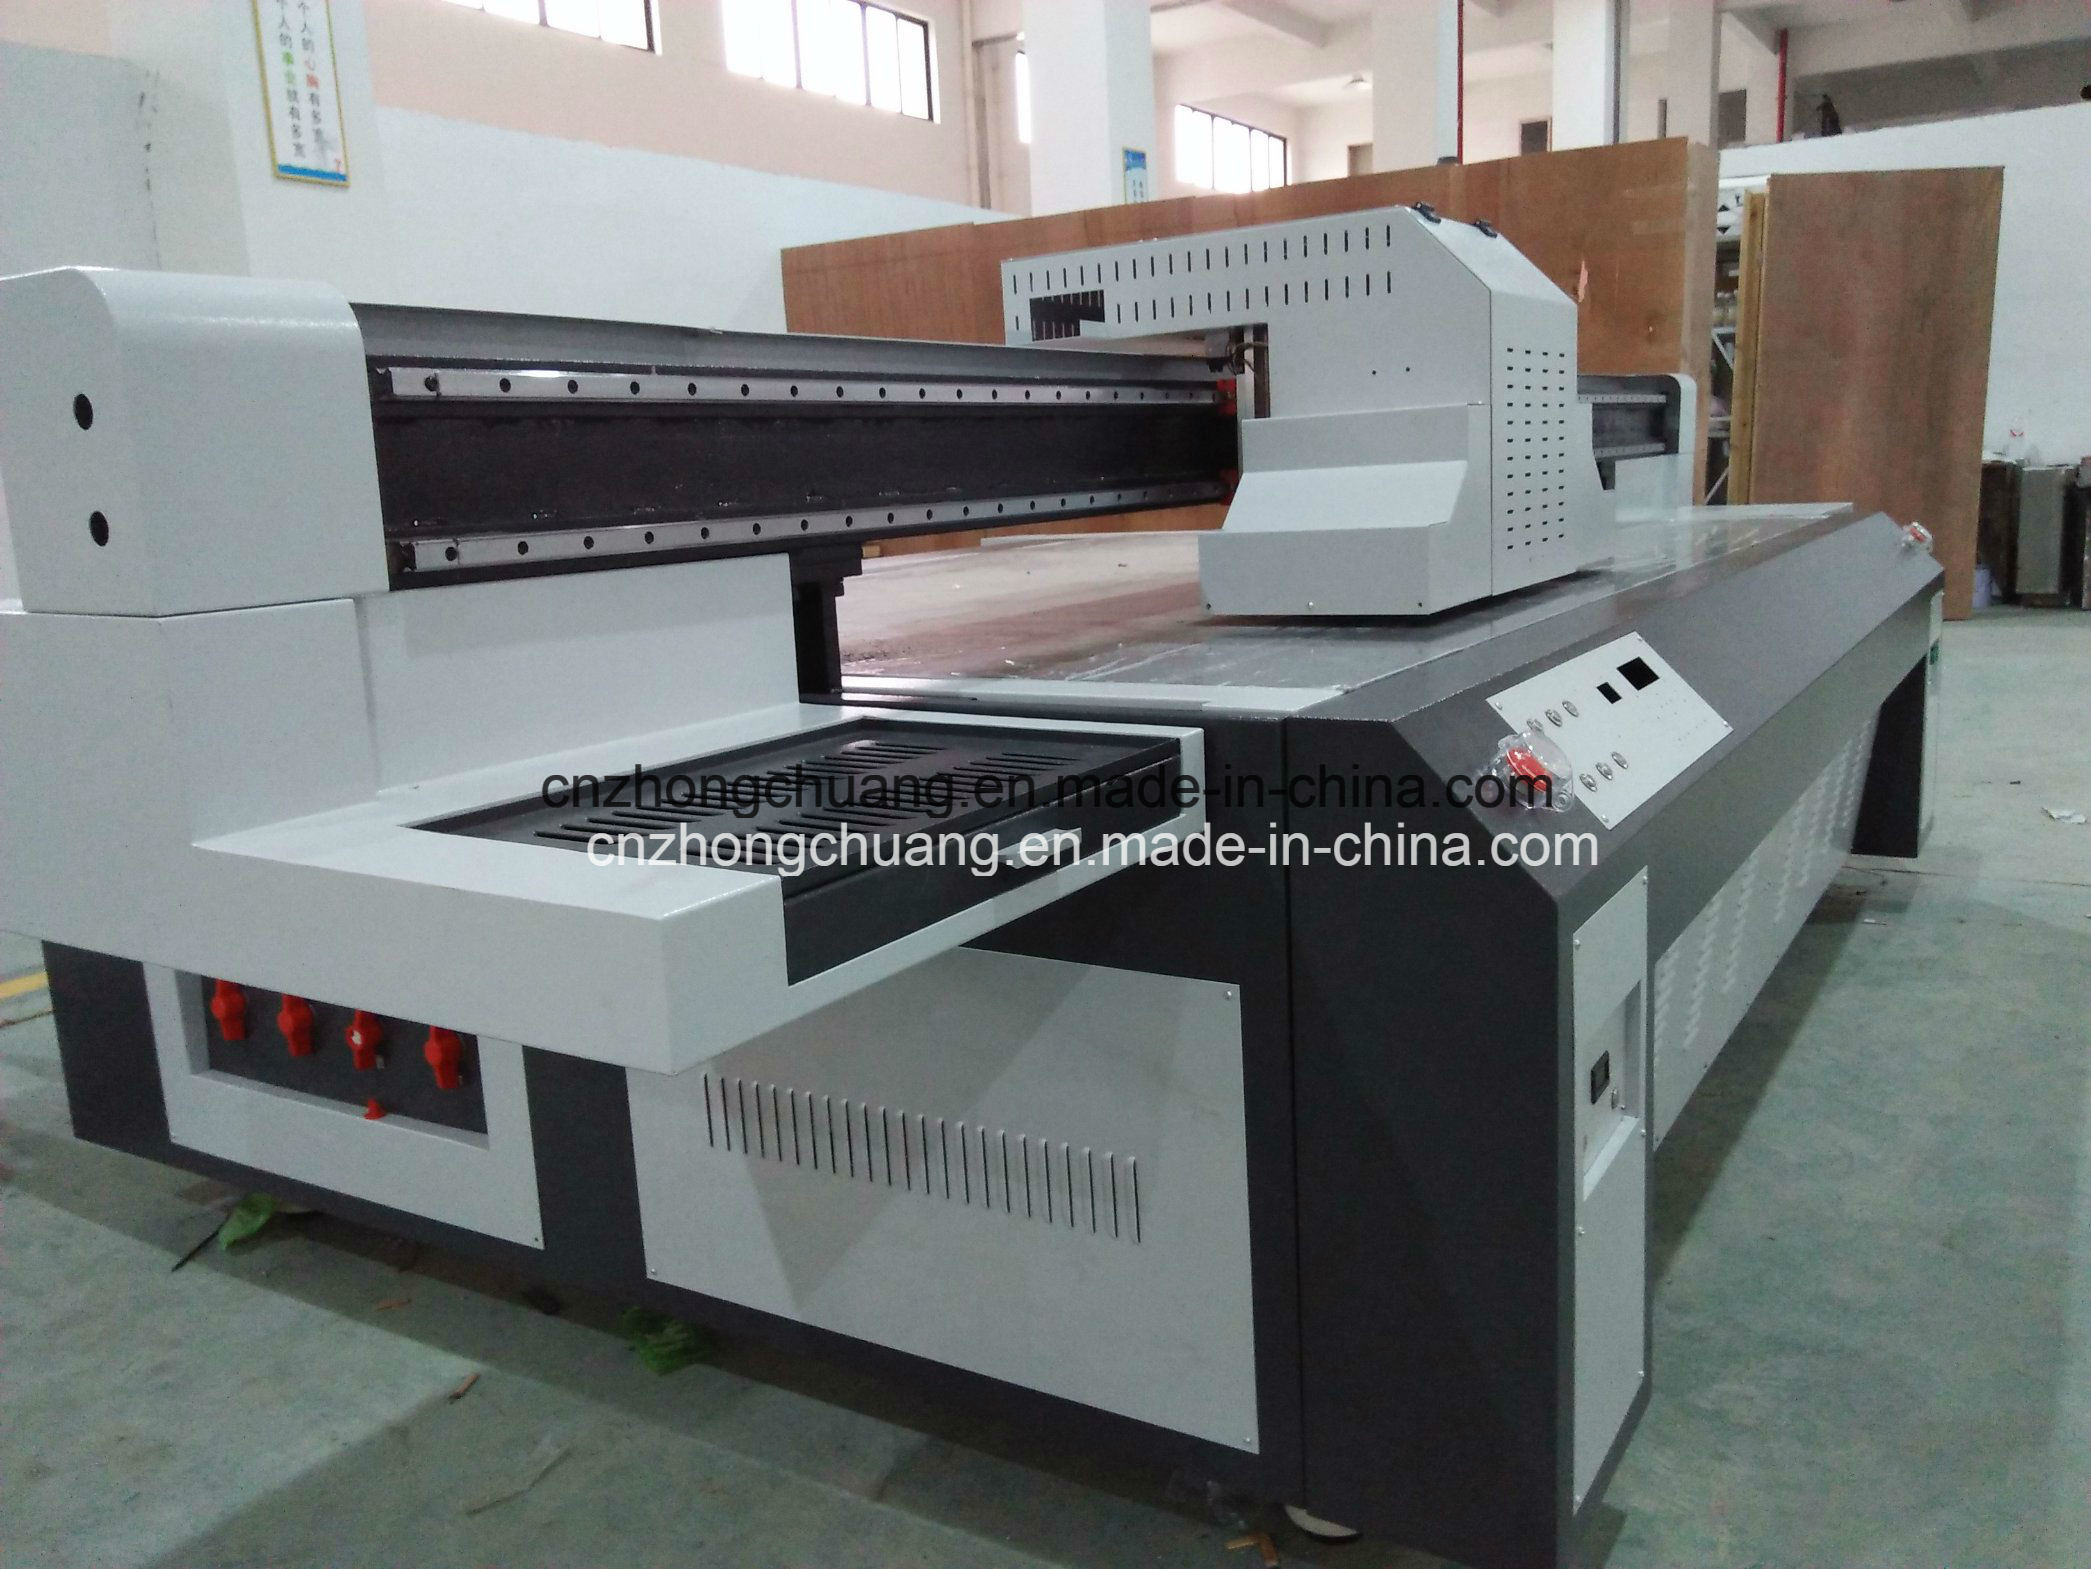 UV Flatbed Printer for Printing LED Lamp Cover Plastic Printer